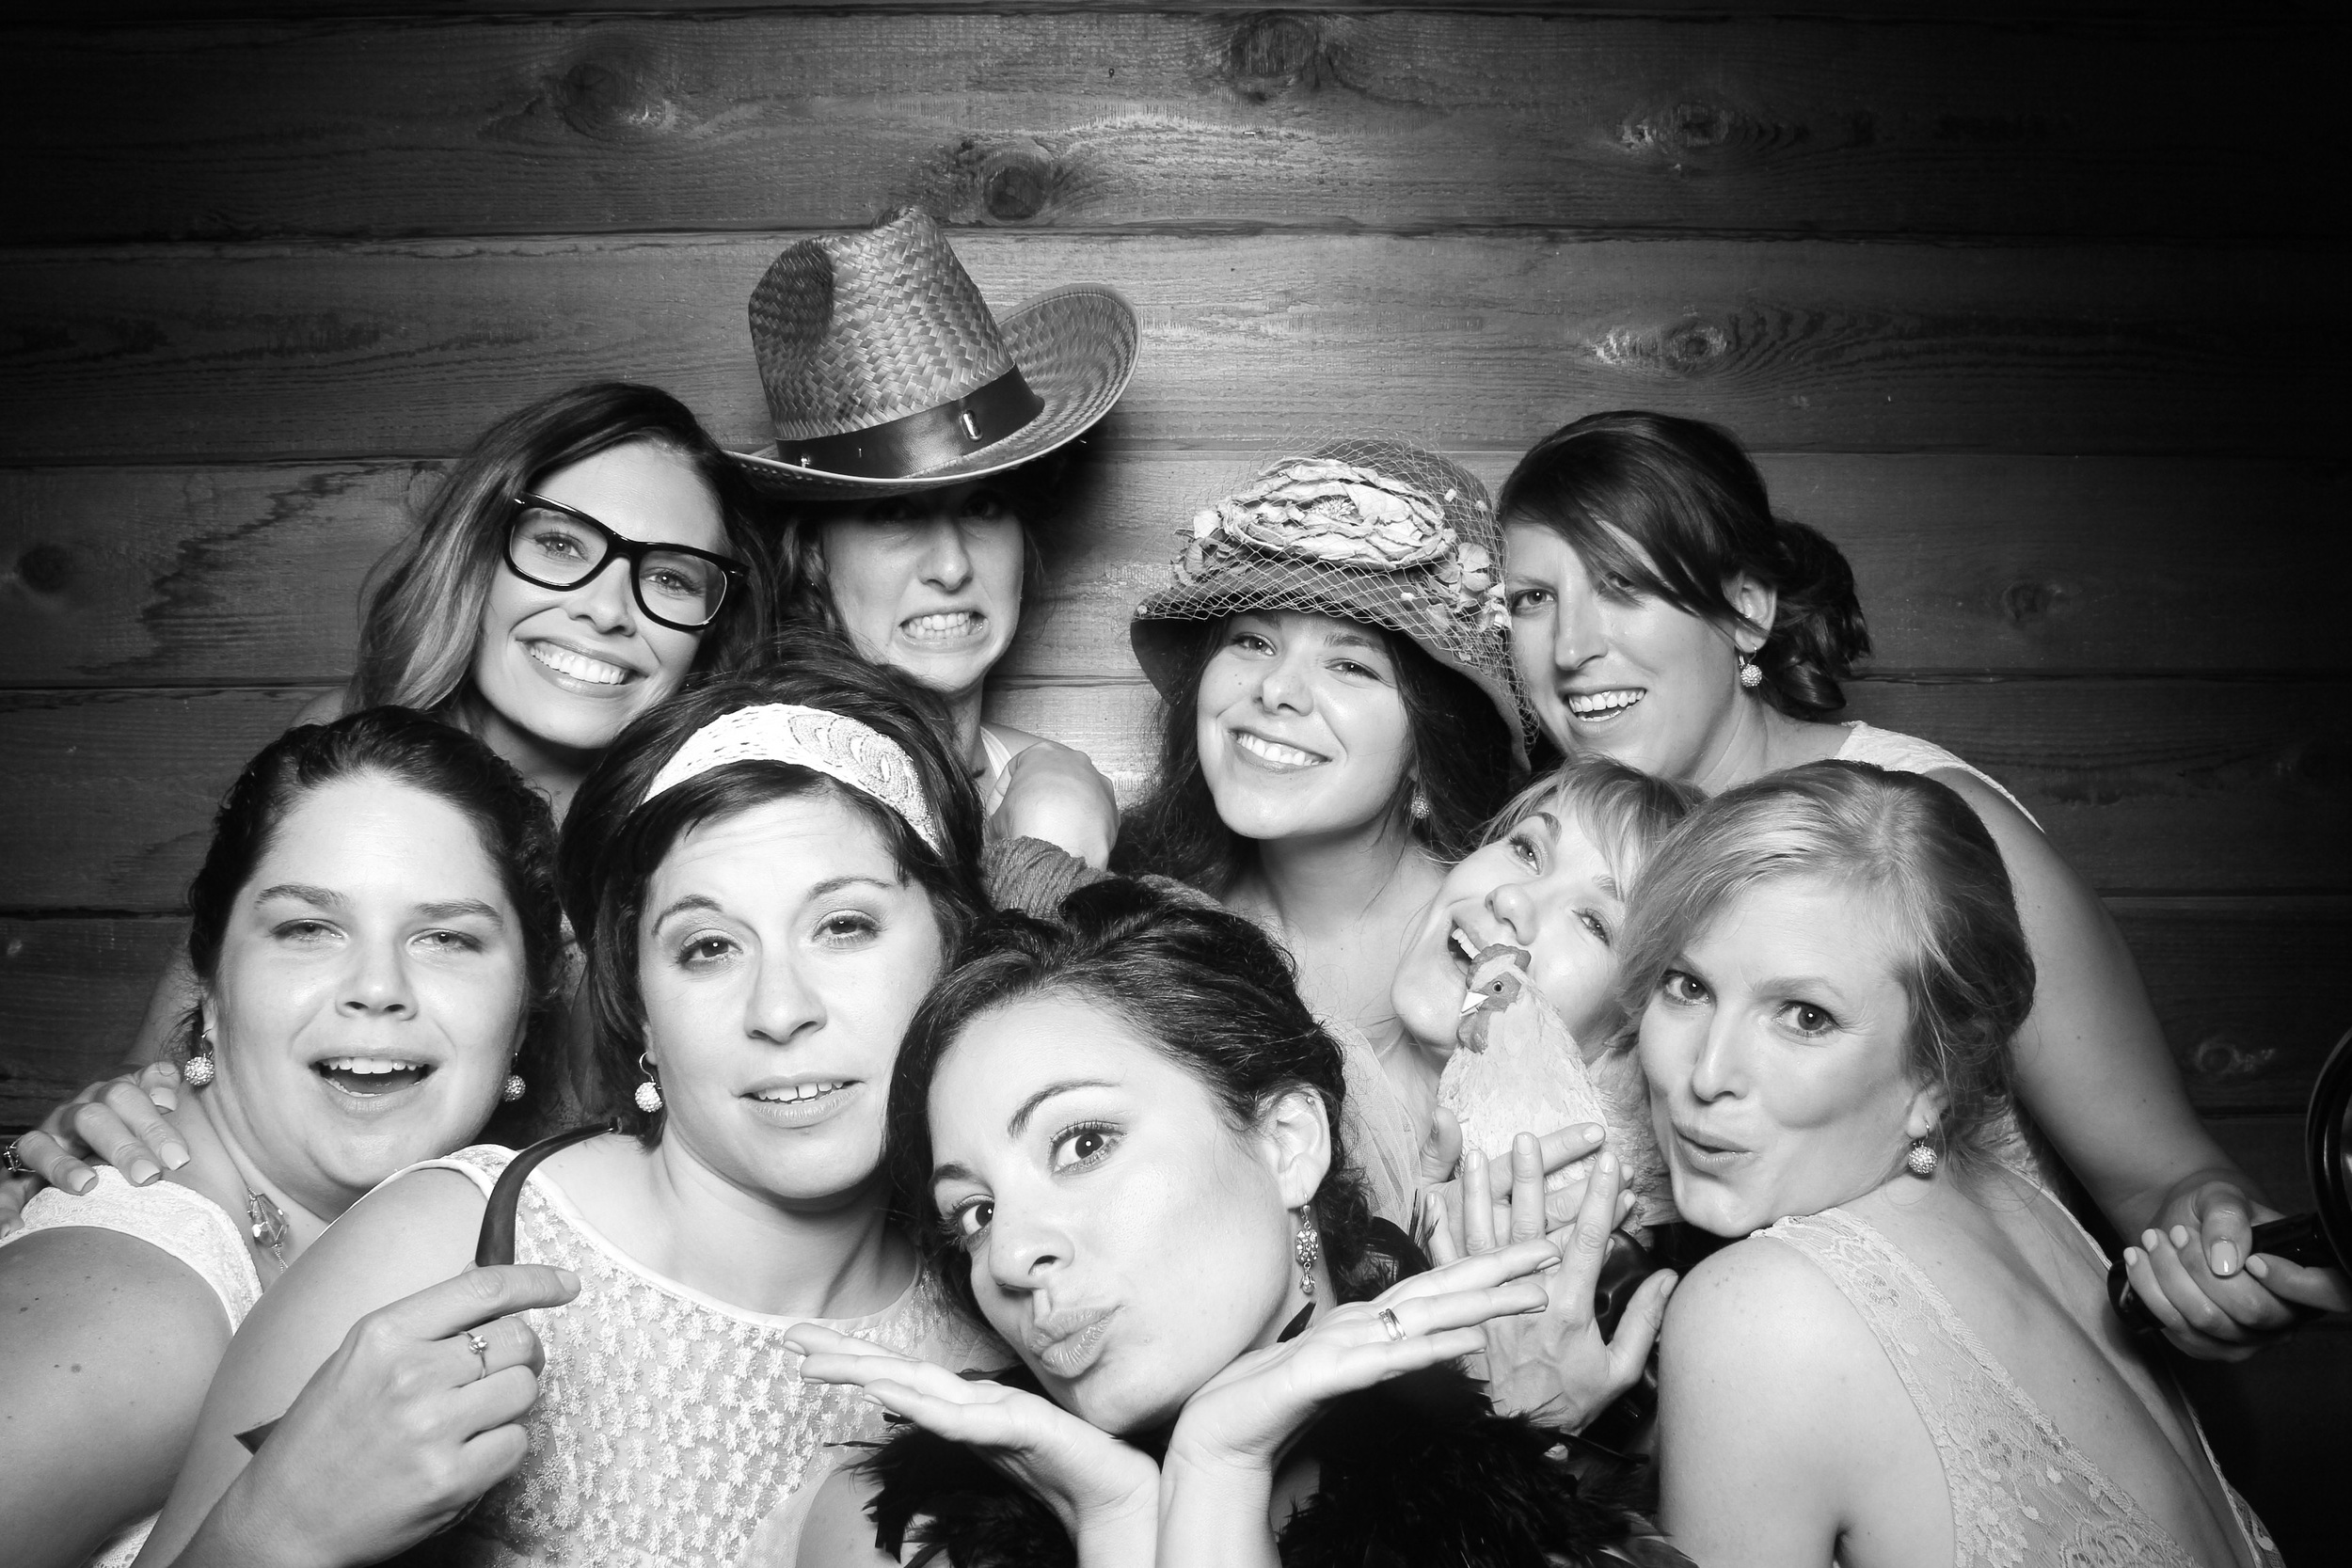 The bride gets a photo booth picture with her besties at Donley's Wild West Town in Union, IL!